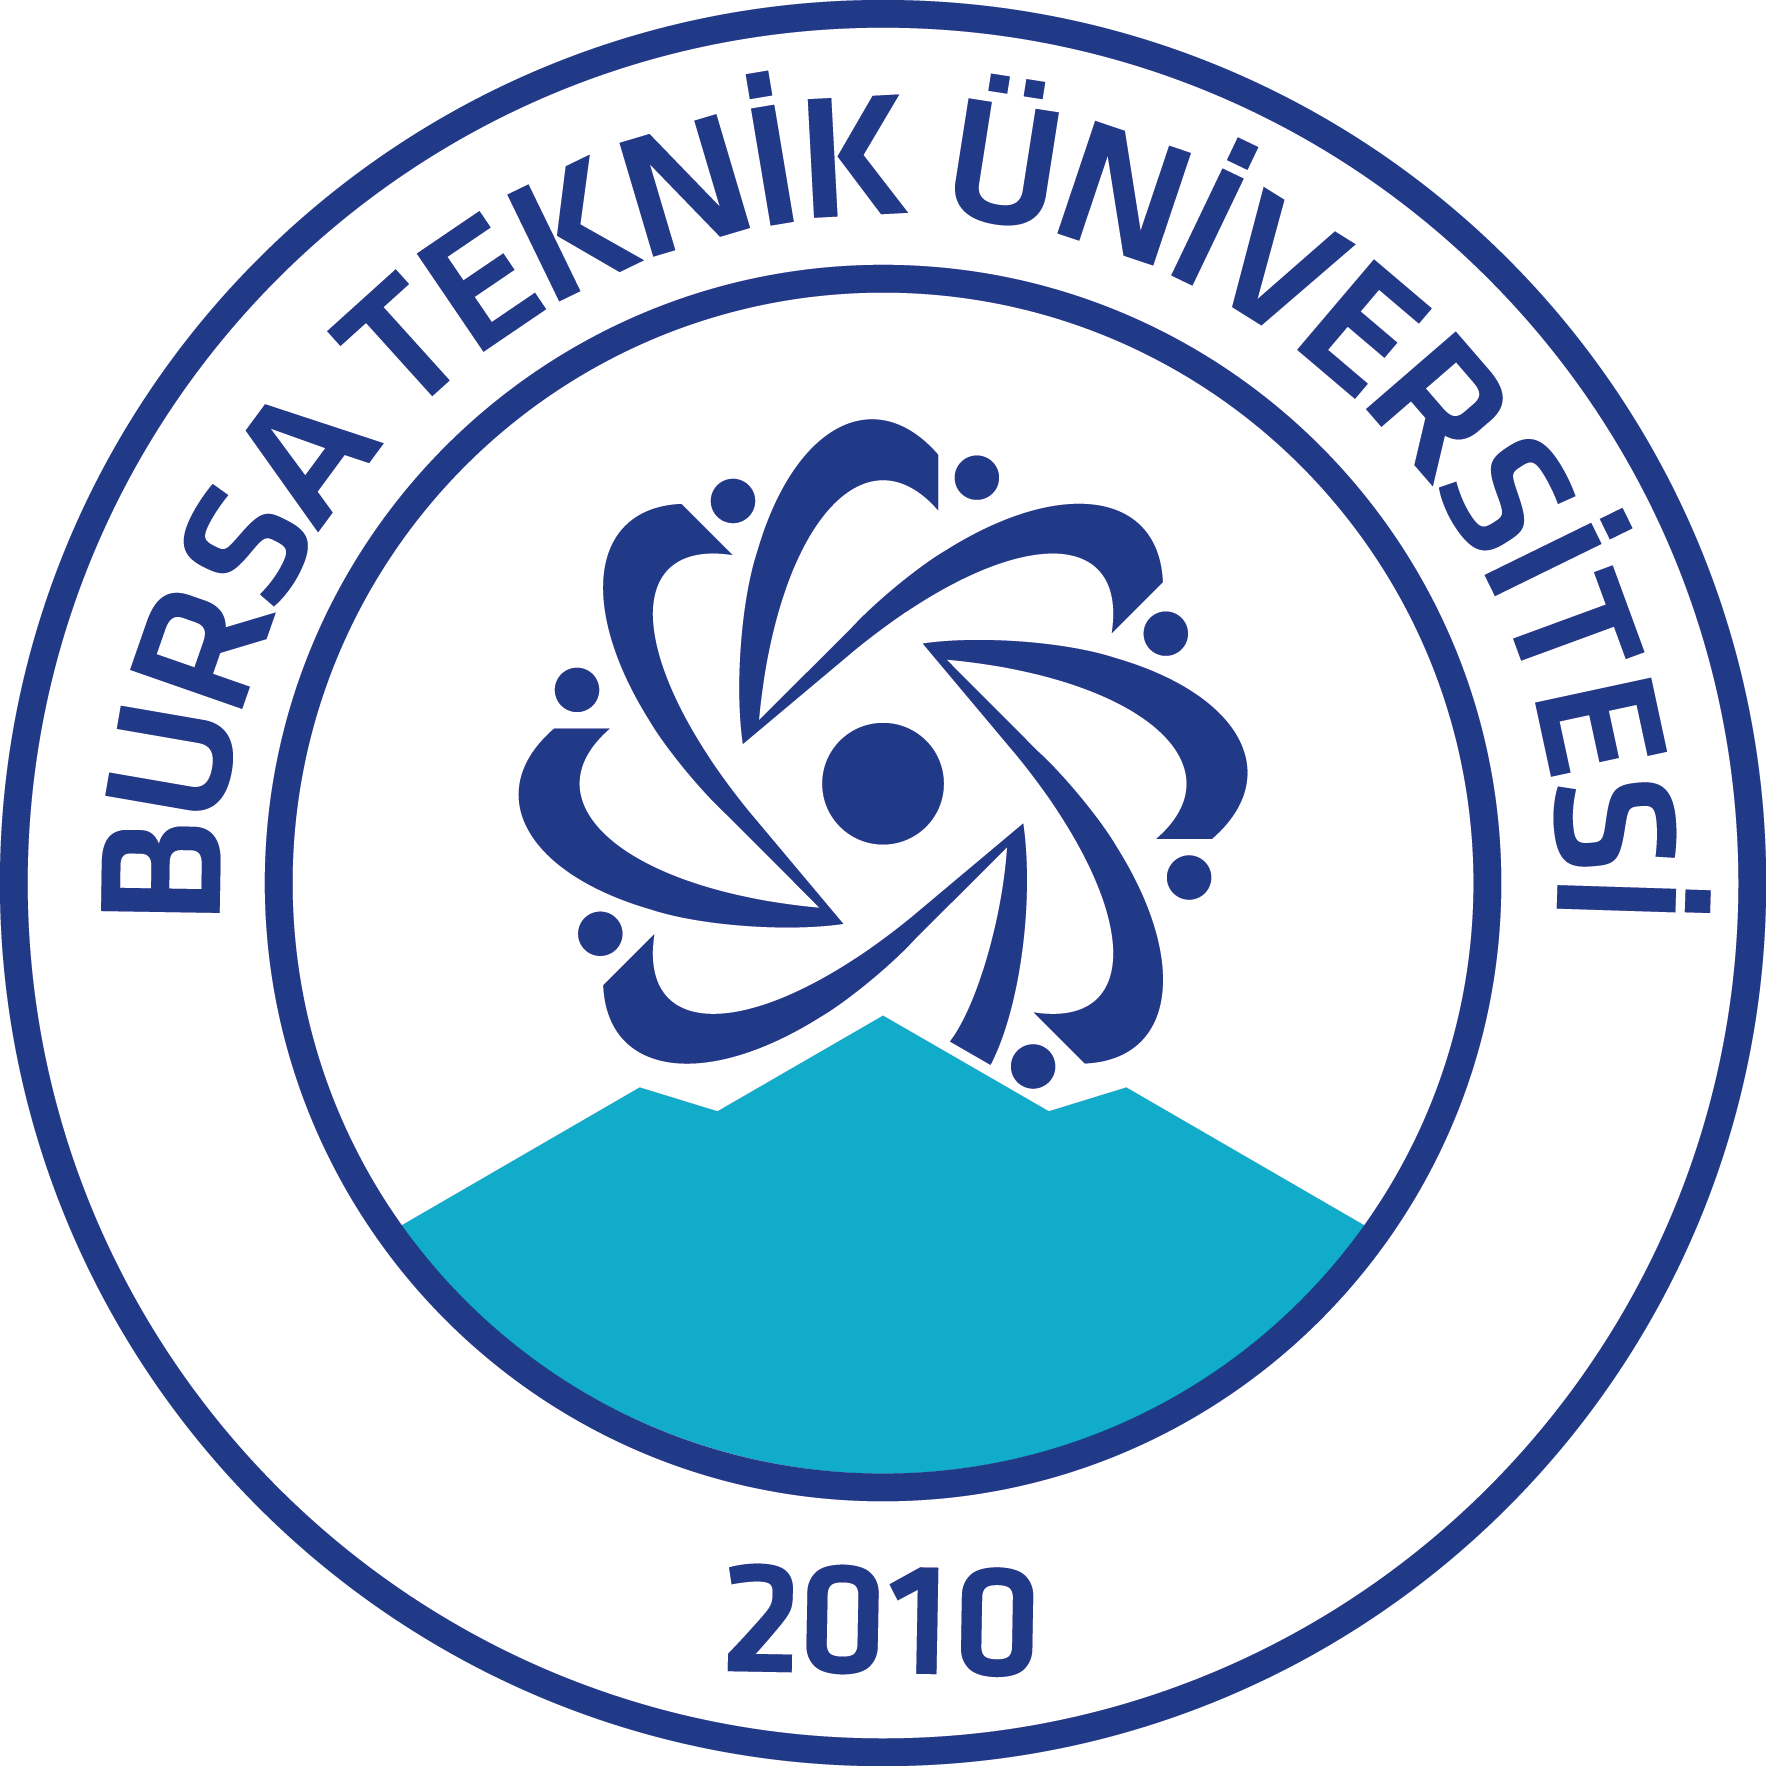 bursa teknik universitesi logo